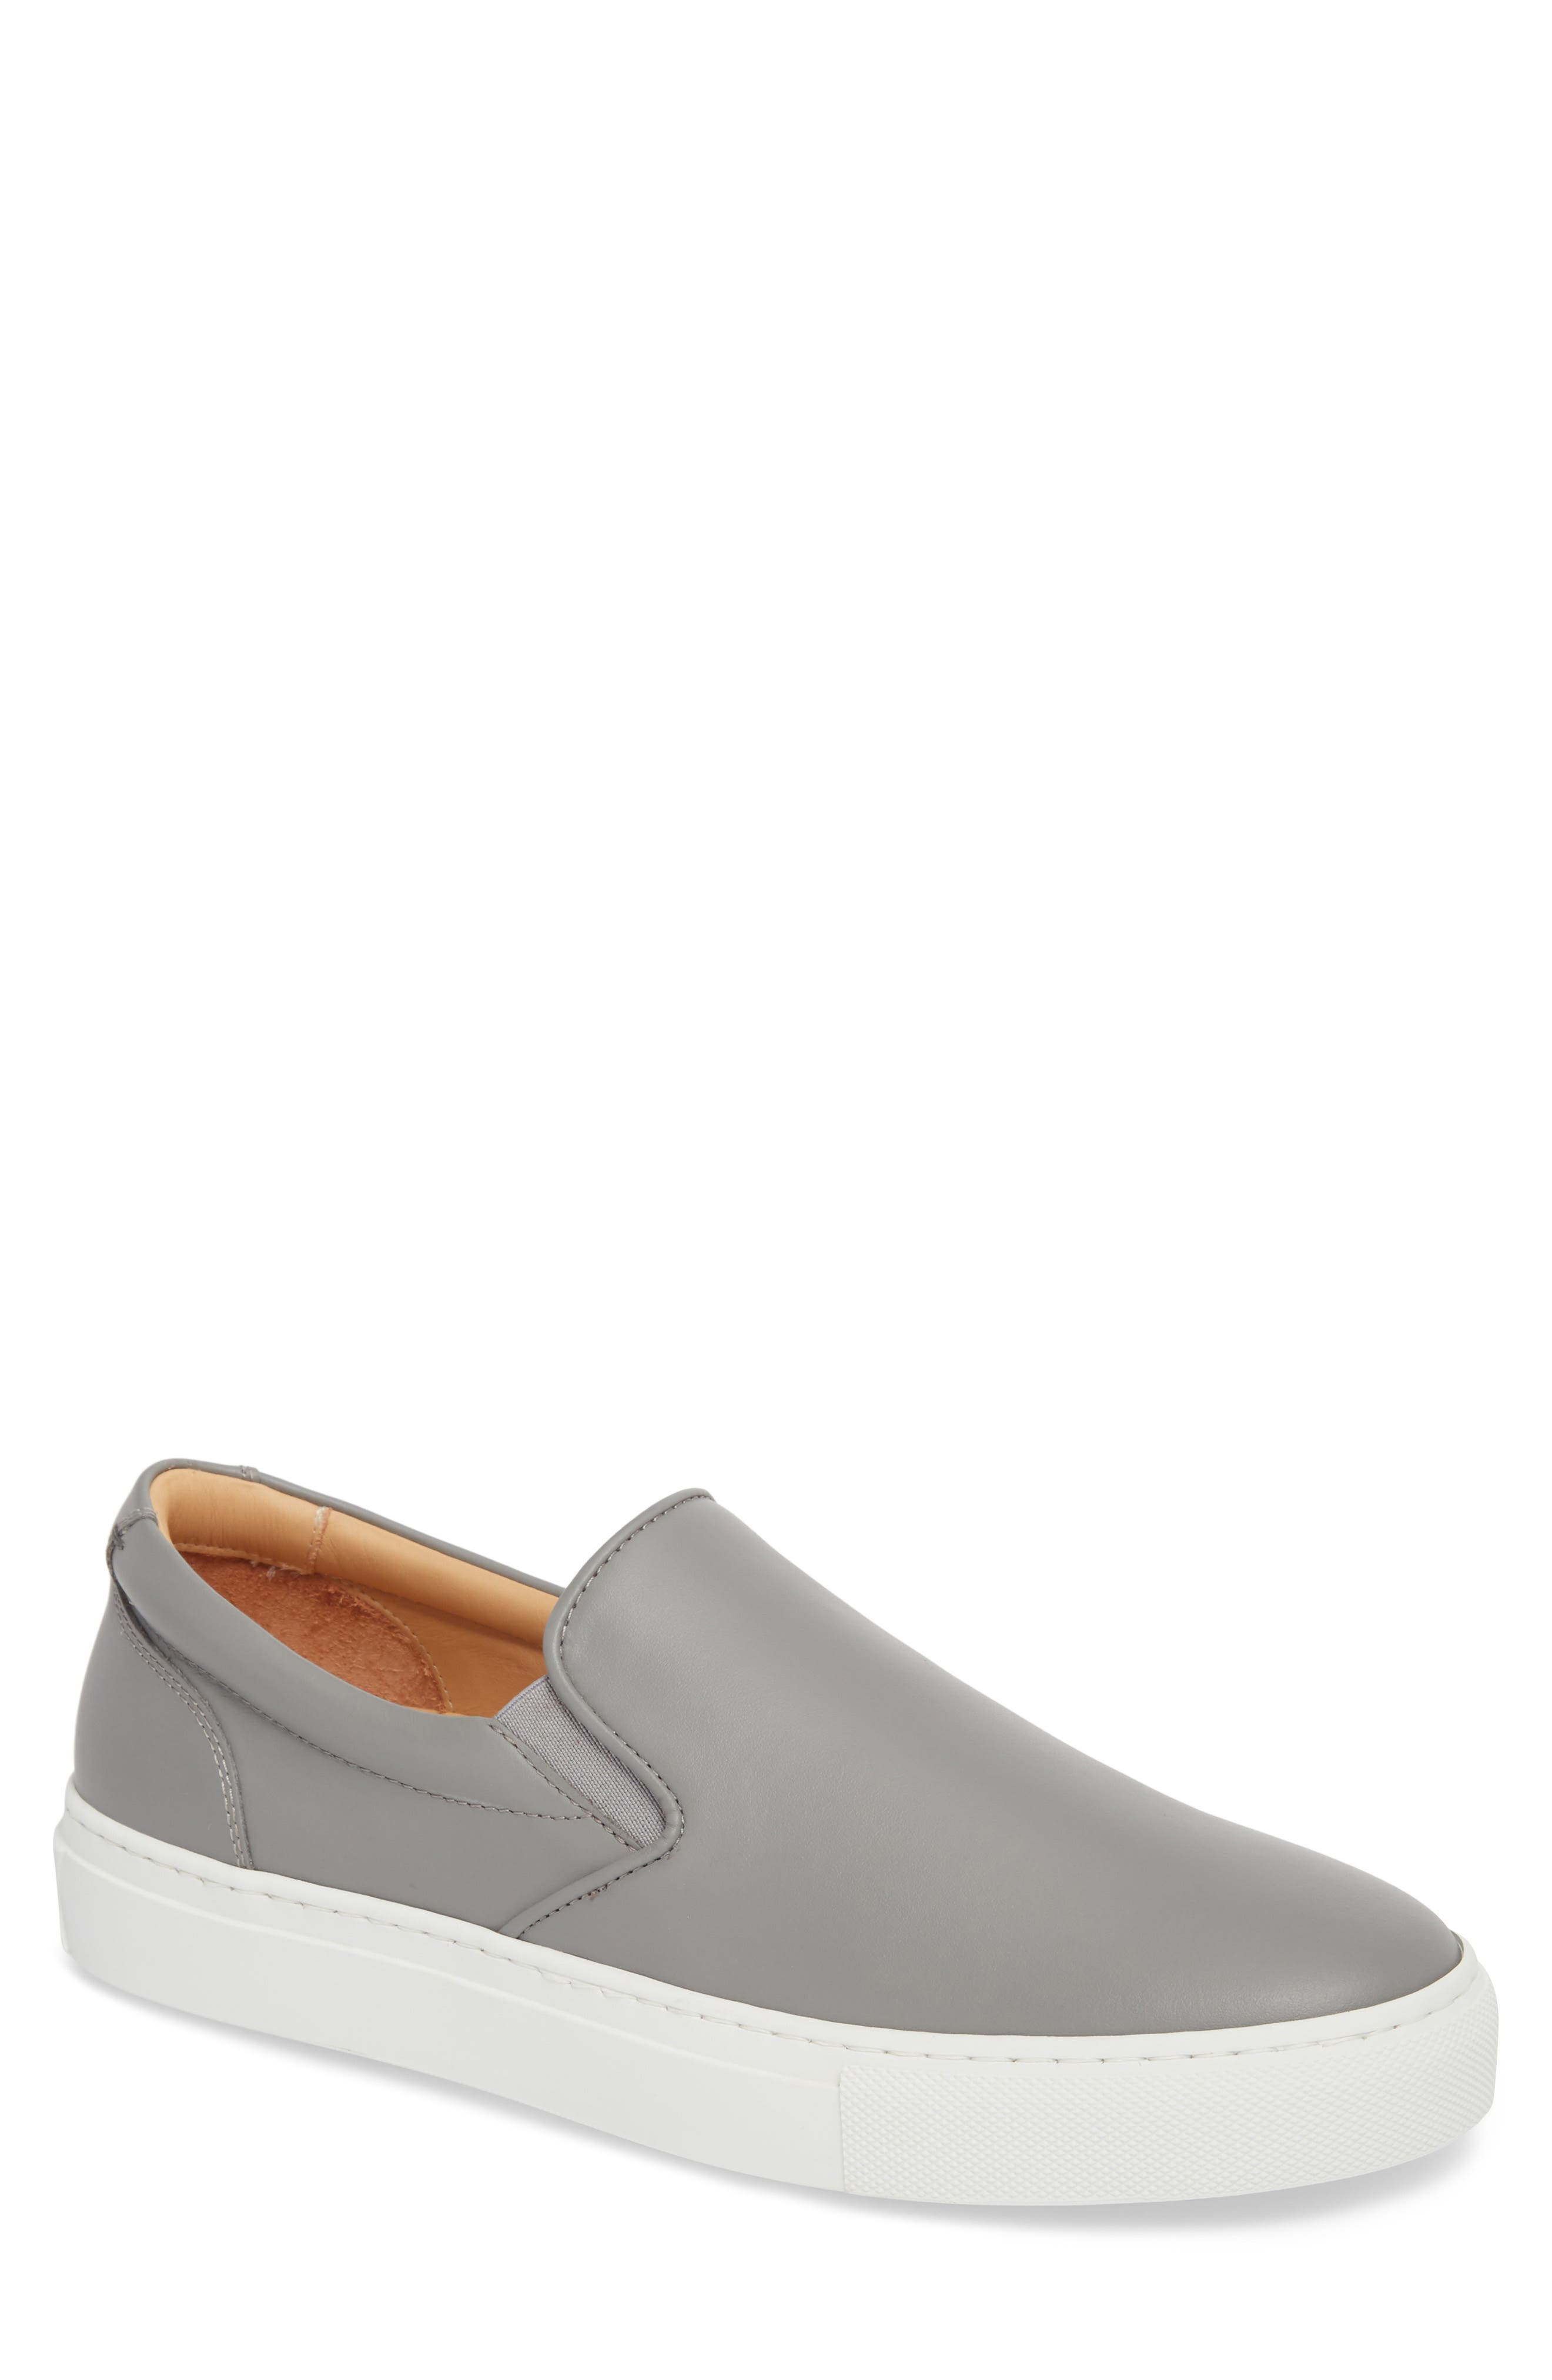 Wooster Slip-On Sneaker,                         Main,                         color, Grey Leather